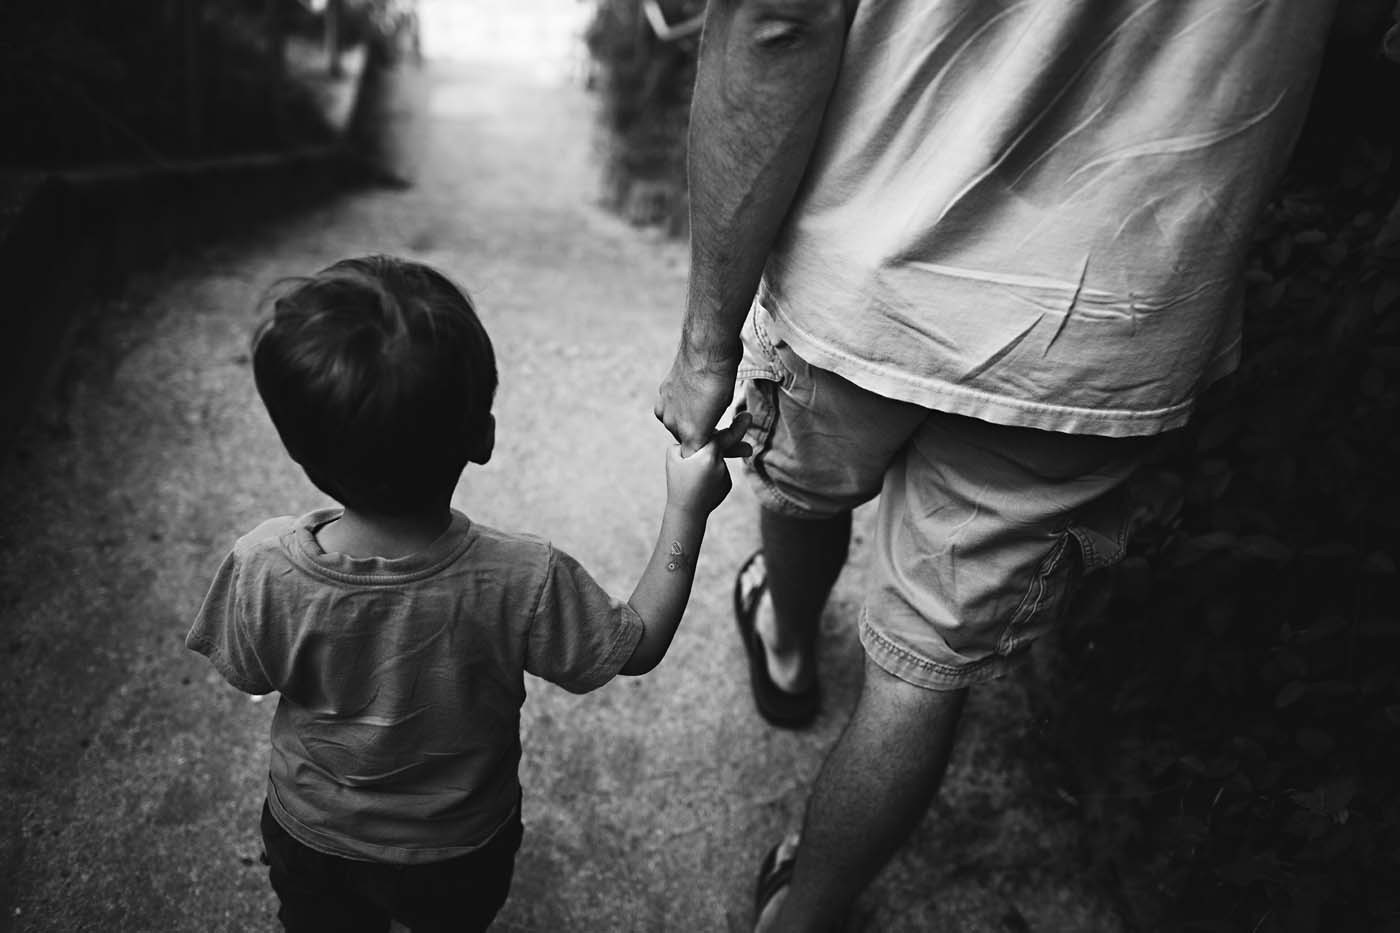 Hand In Hand by Maria Manco